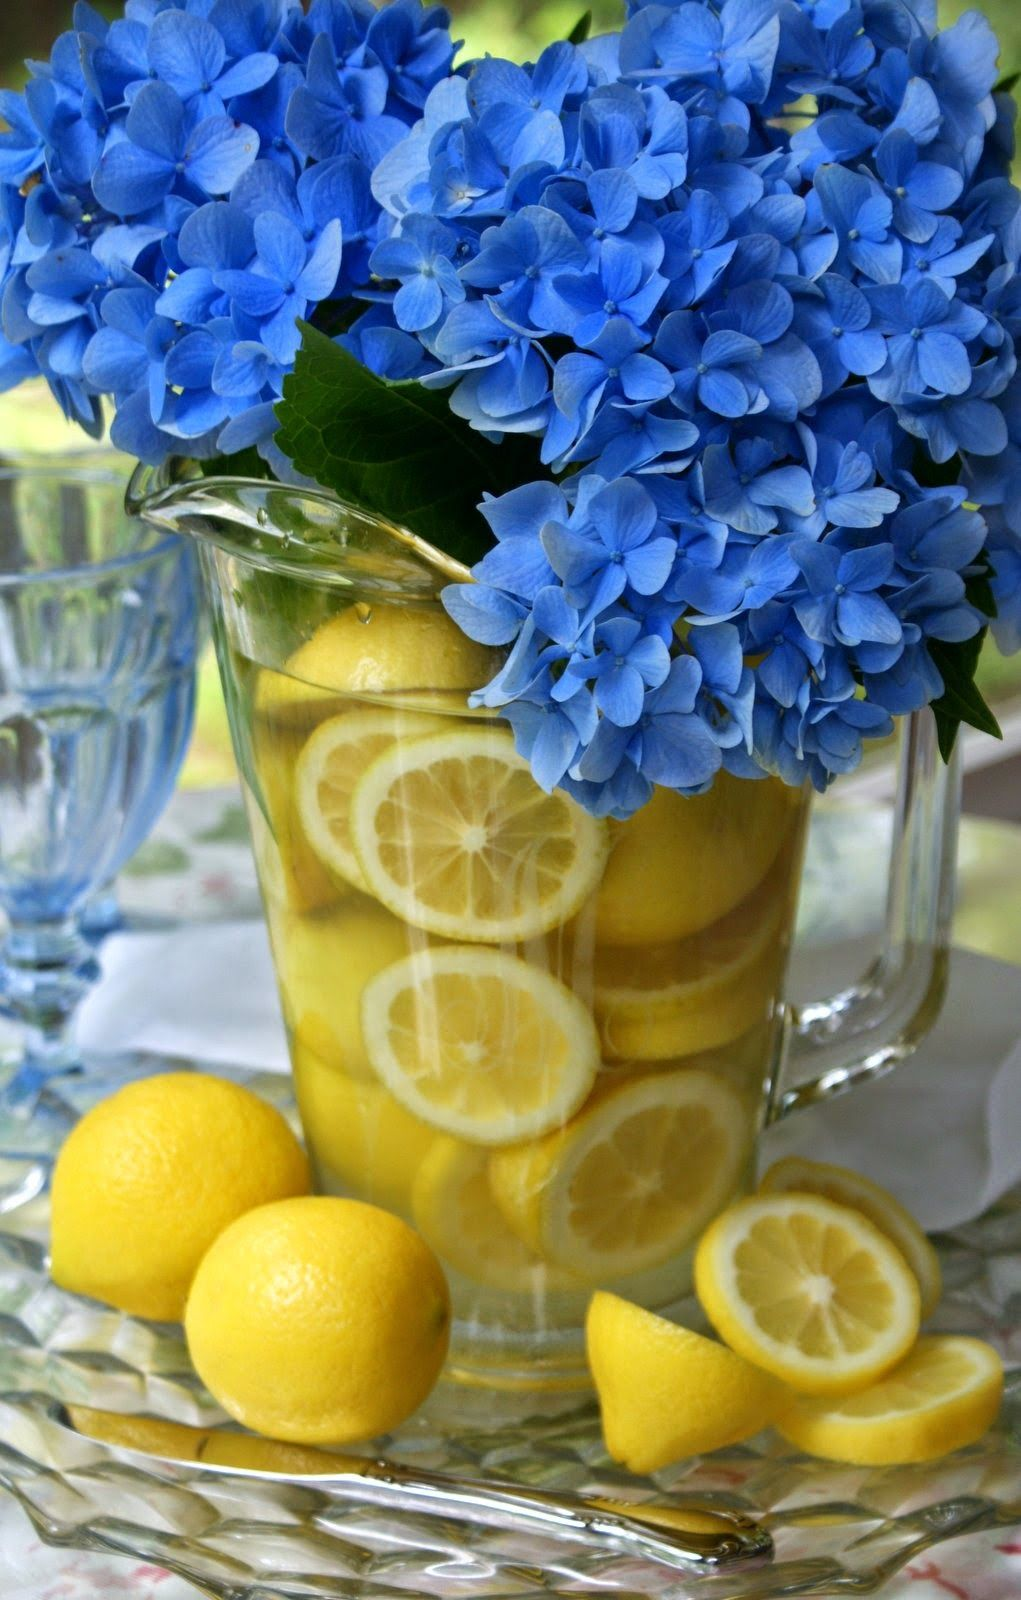 A little loveliness pretty yellow lemons combined with